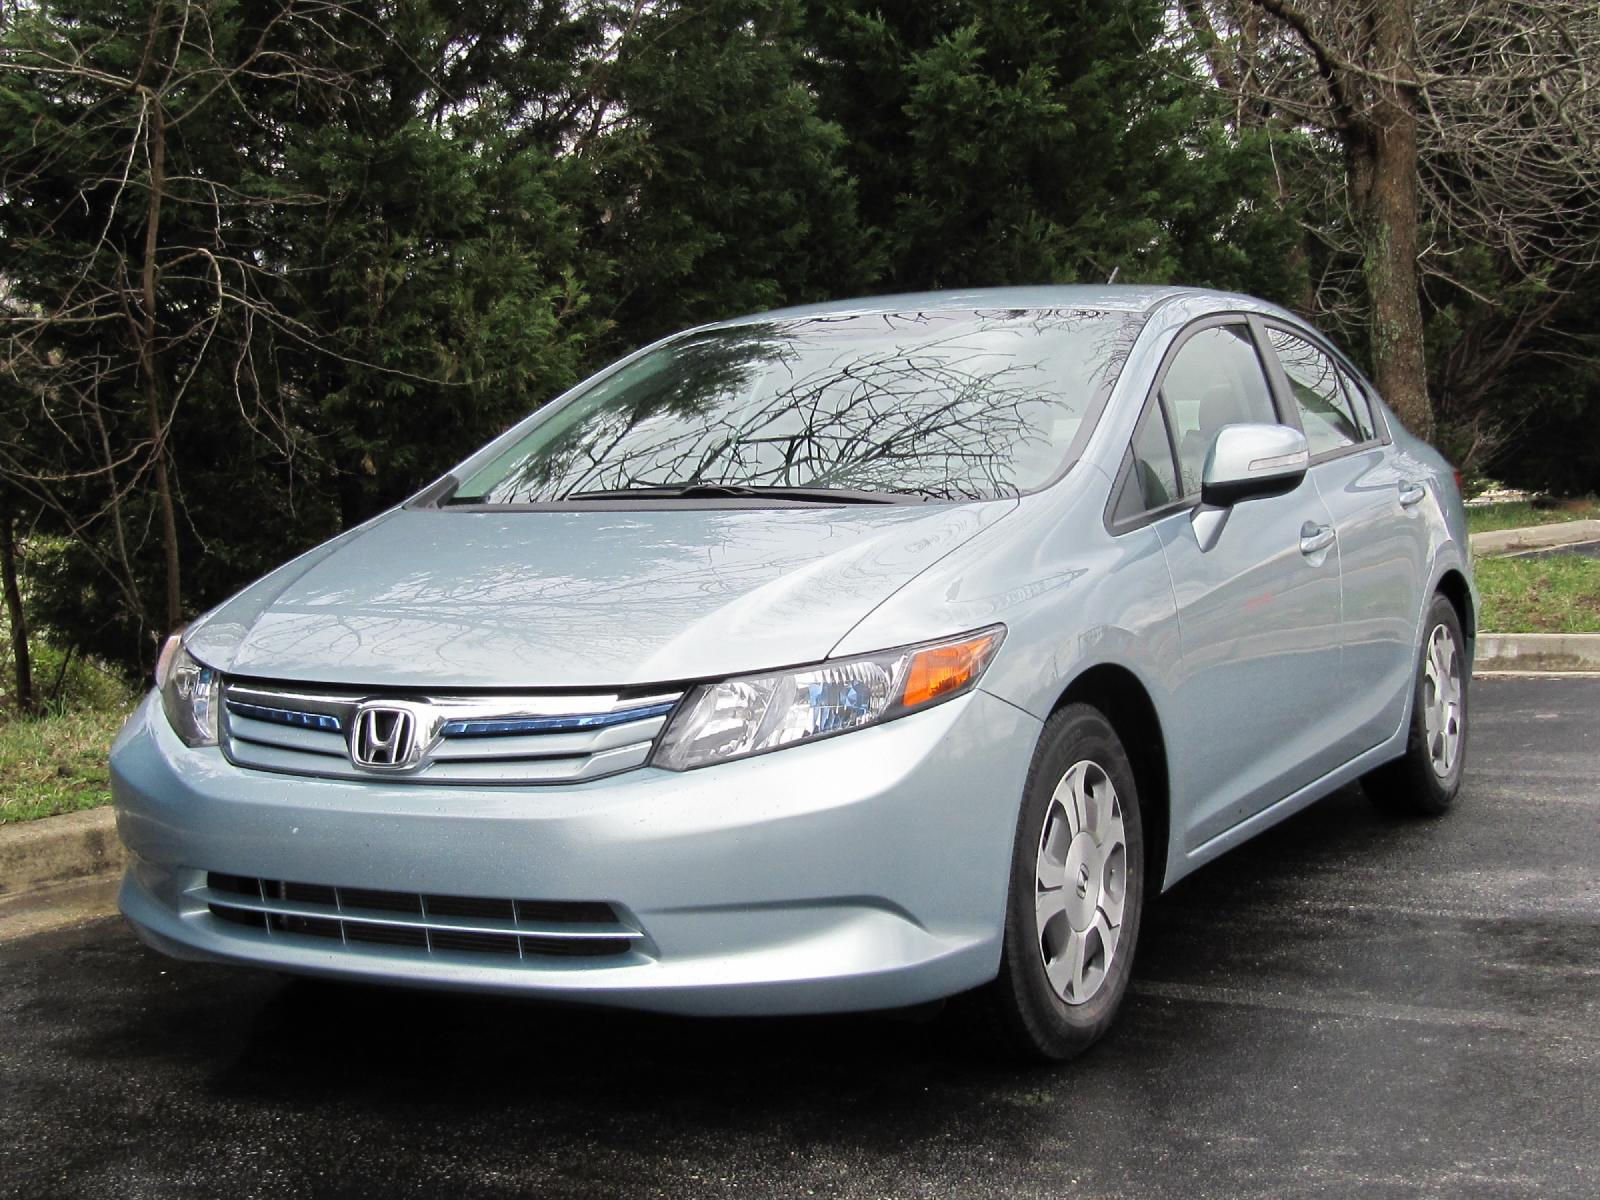 2012 honda civic ultimate guide reviews gas mileage videos